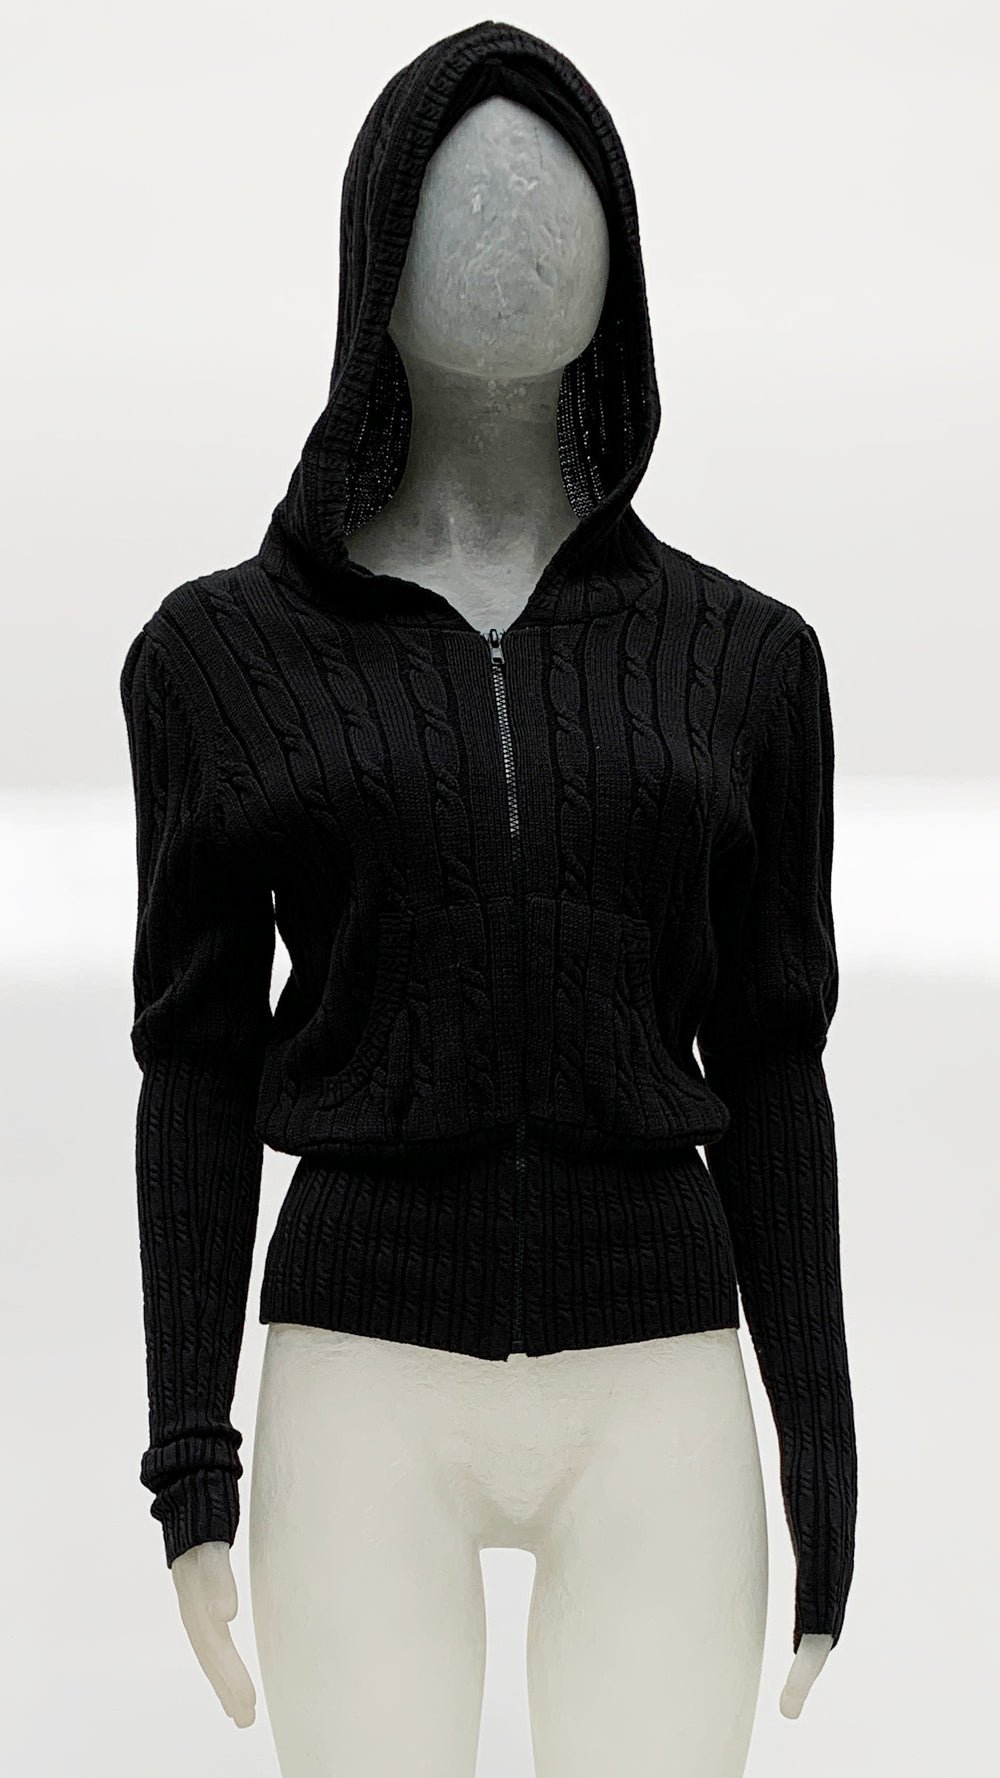 HOODED ZIP JACKET WITH PUFF SLEEVES - 1